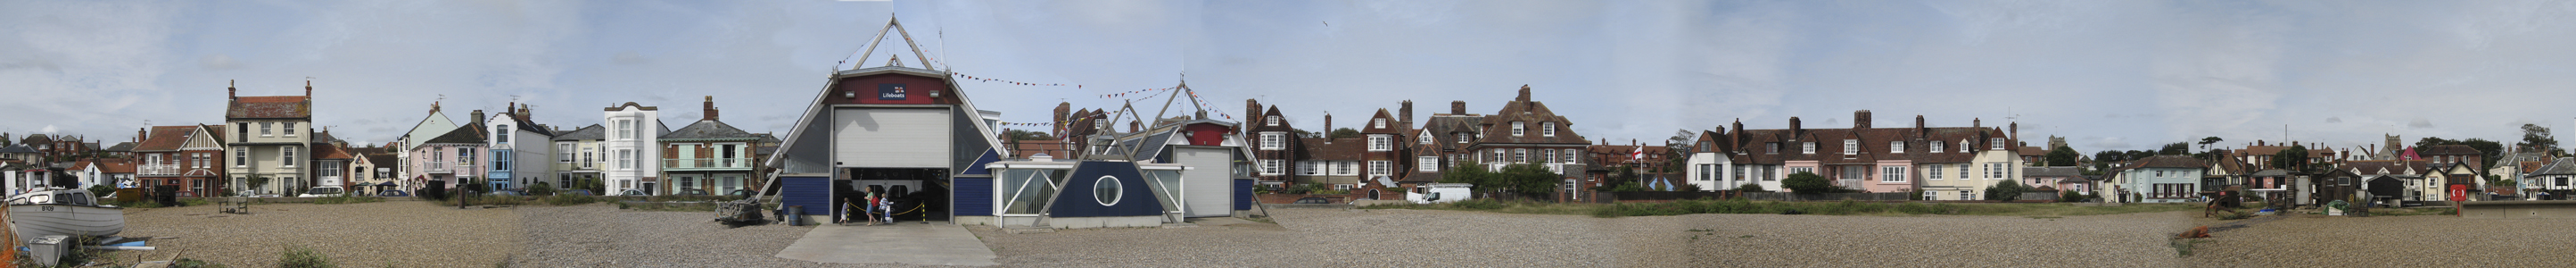 Aldeburgh Seafront and Lifeboat Station